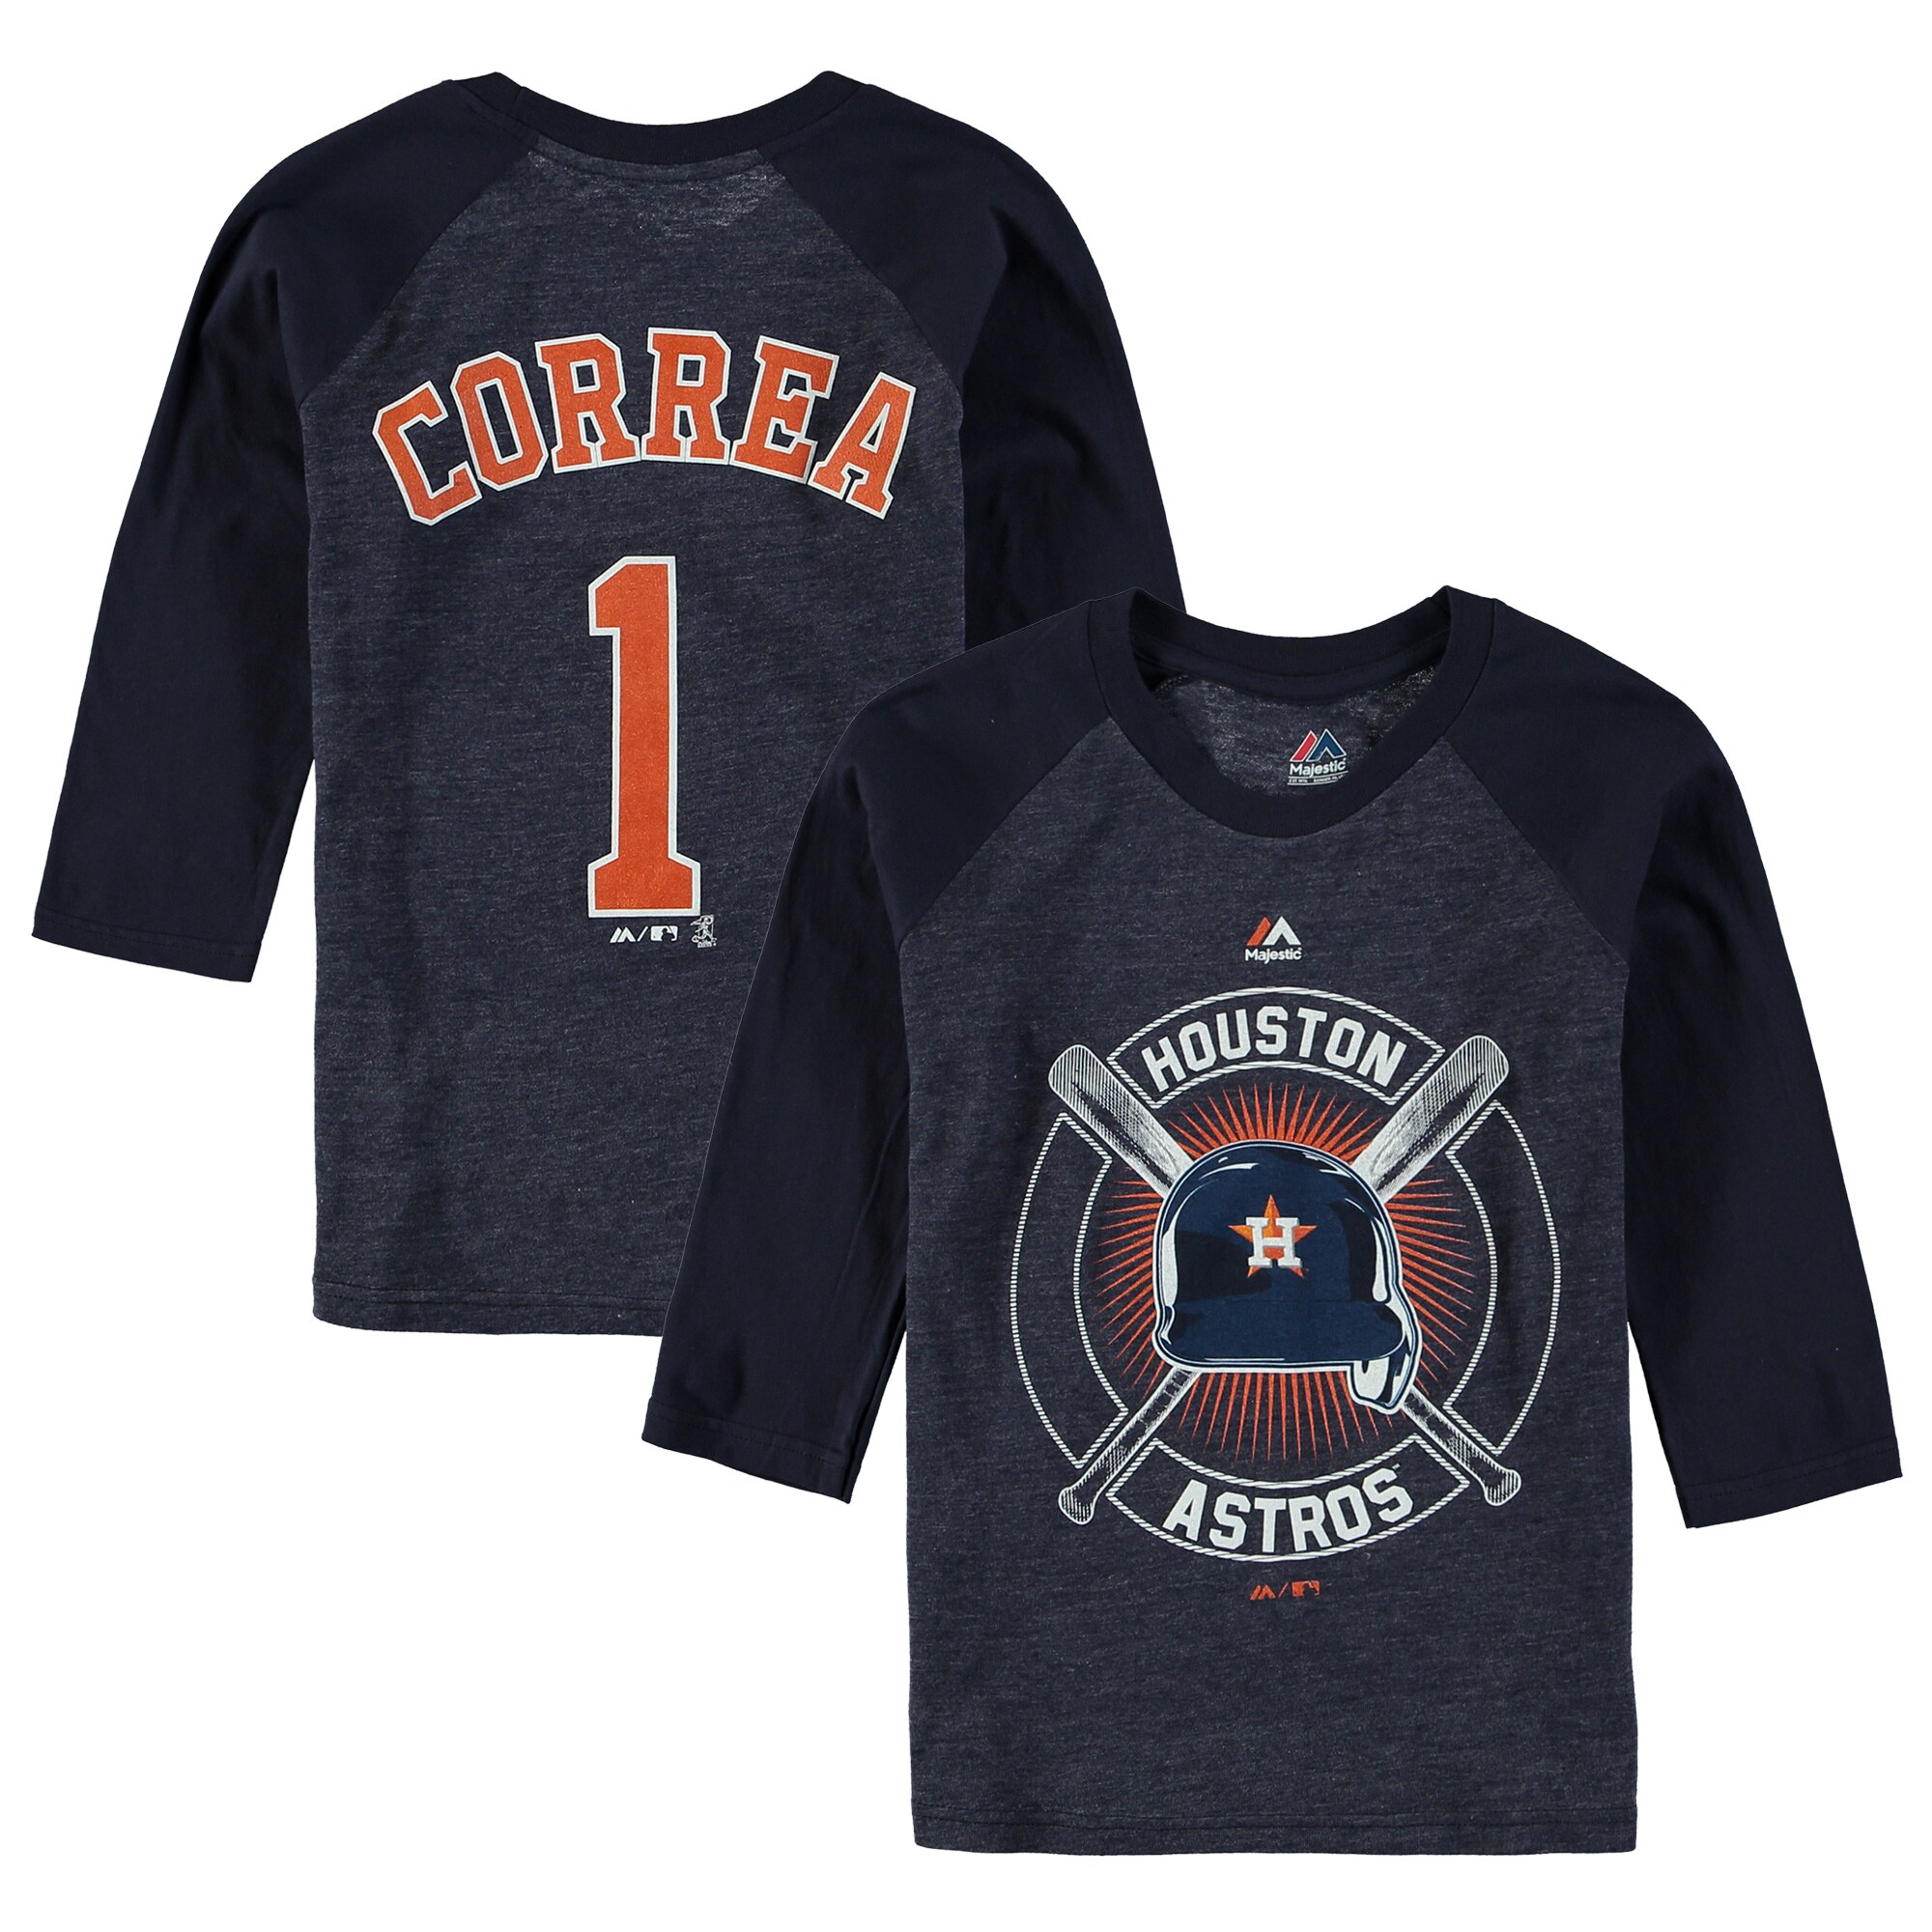 Carlos Correa Houston Astros Youth Name & Number Tri-Blend 3/4-Sleeve Raglan T-Shirt - Navy